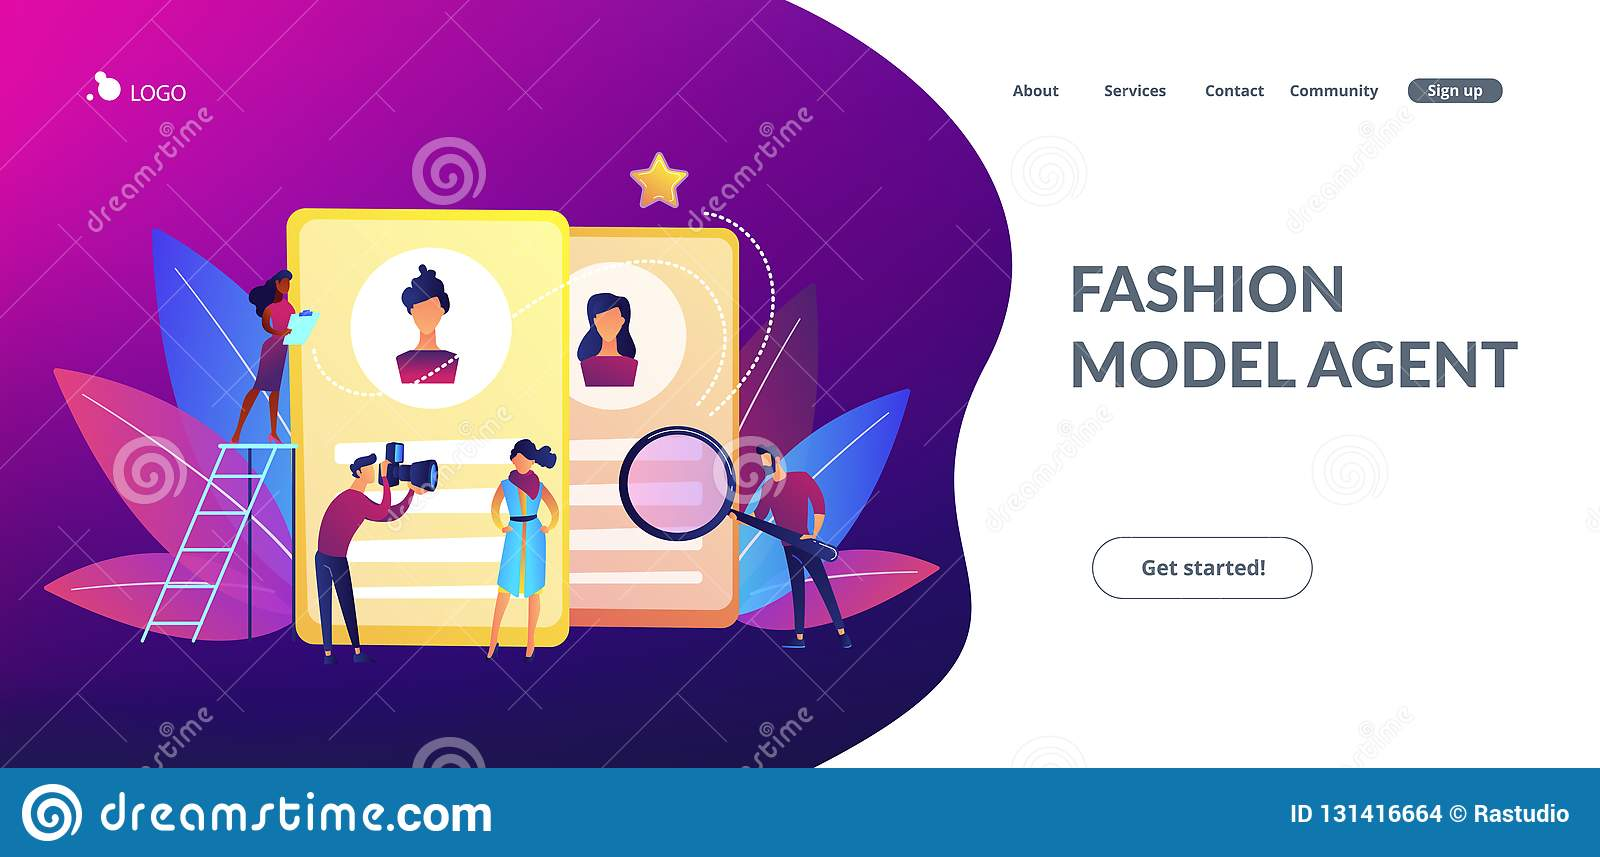 Modeling Agency Concept Landing Page  Stock Vector